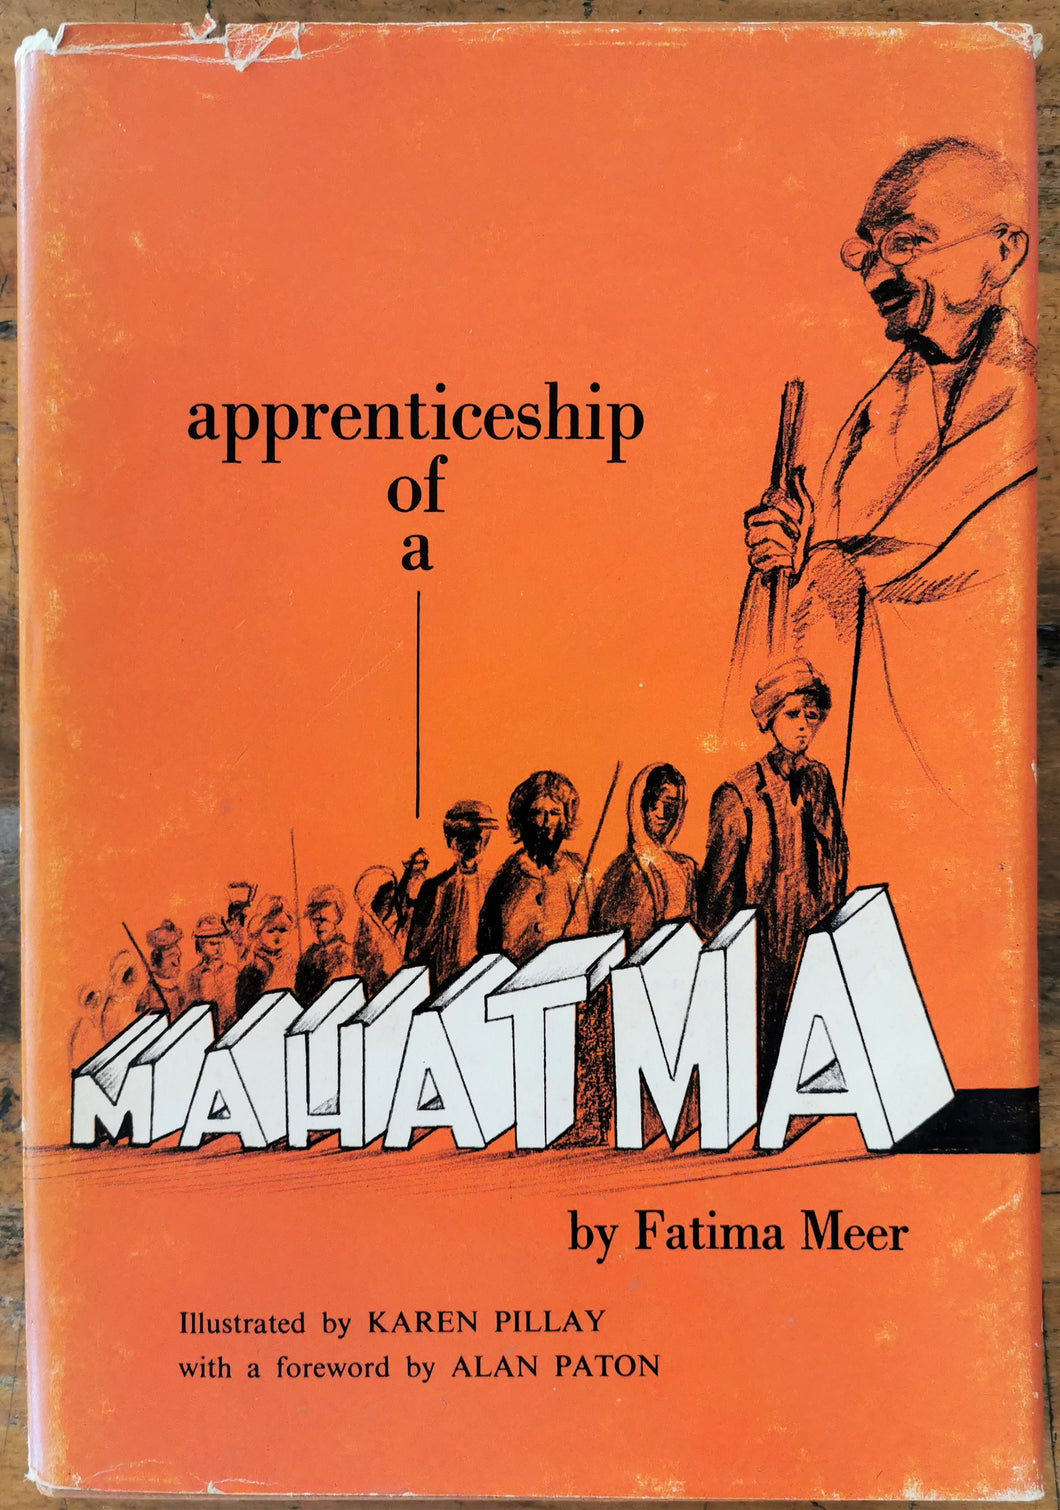 Apprenticeship of a Mahatma by Fatima Meer